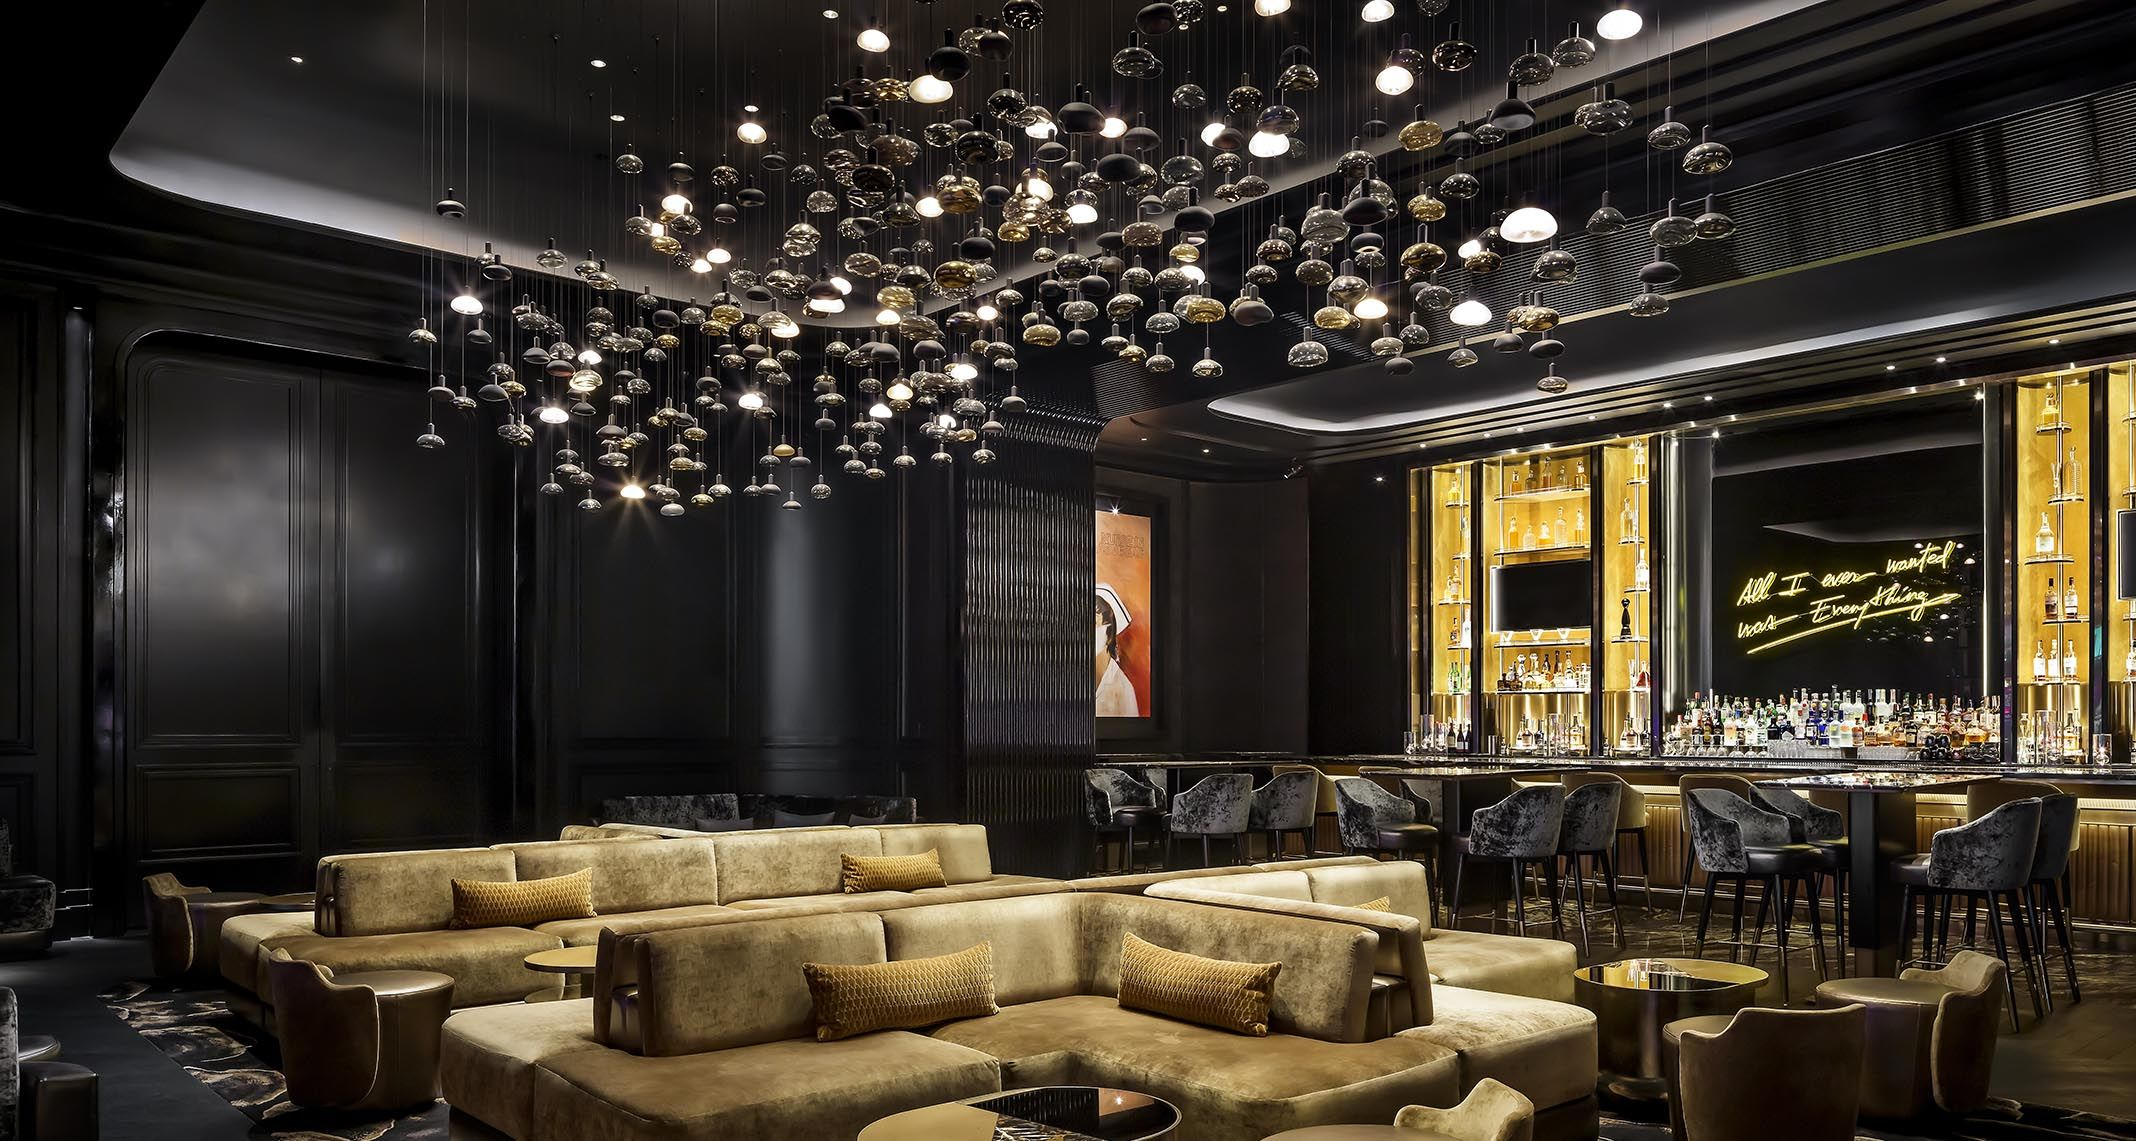 Camden Cocktail Lounge With Images Bar Lounge Decor Bar